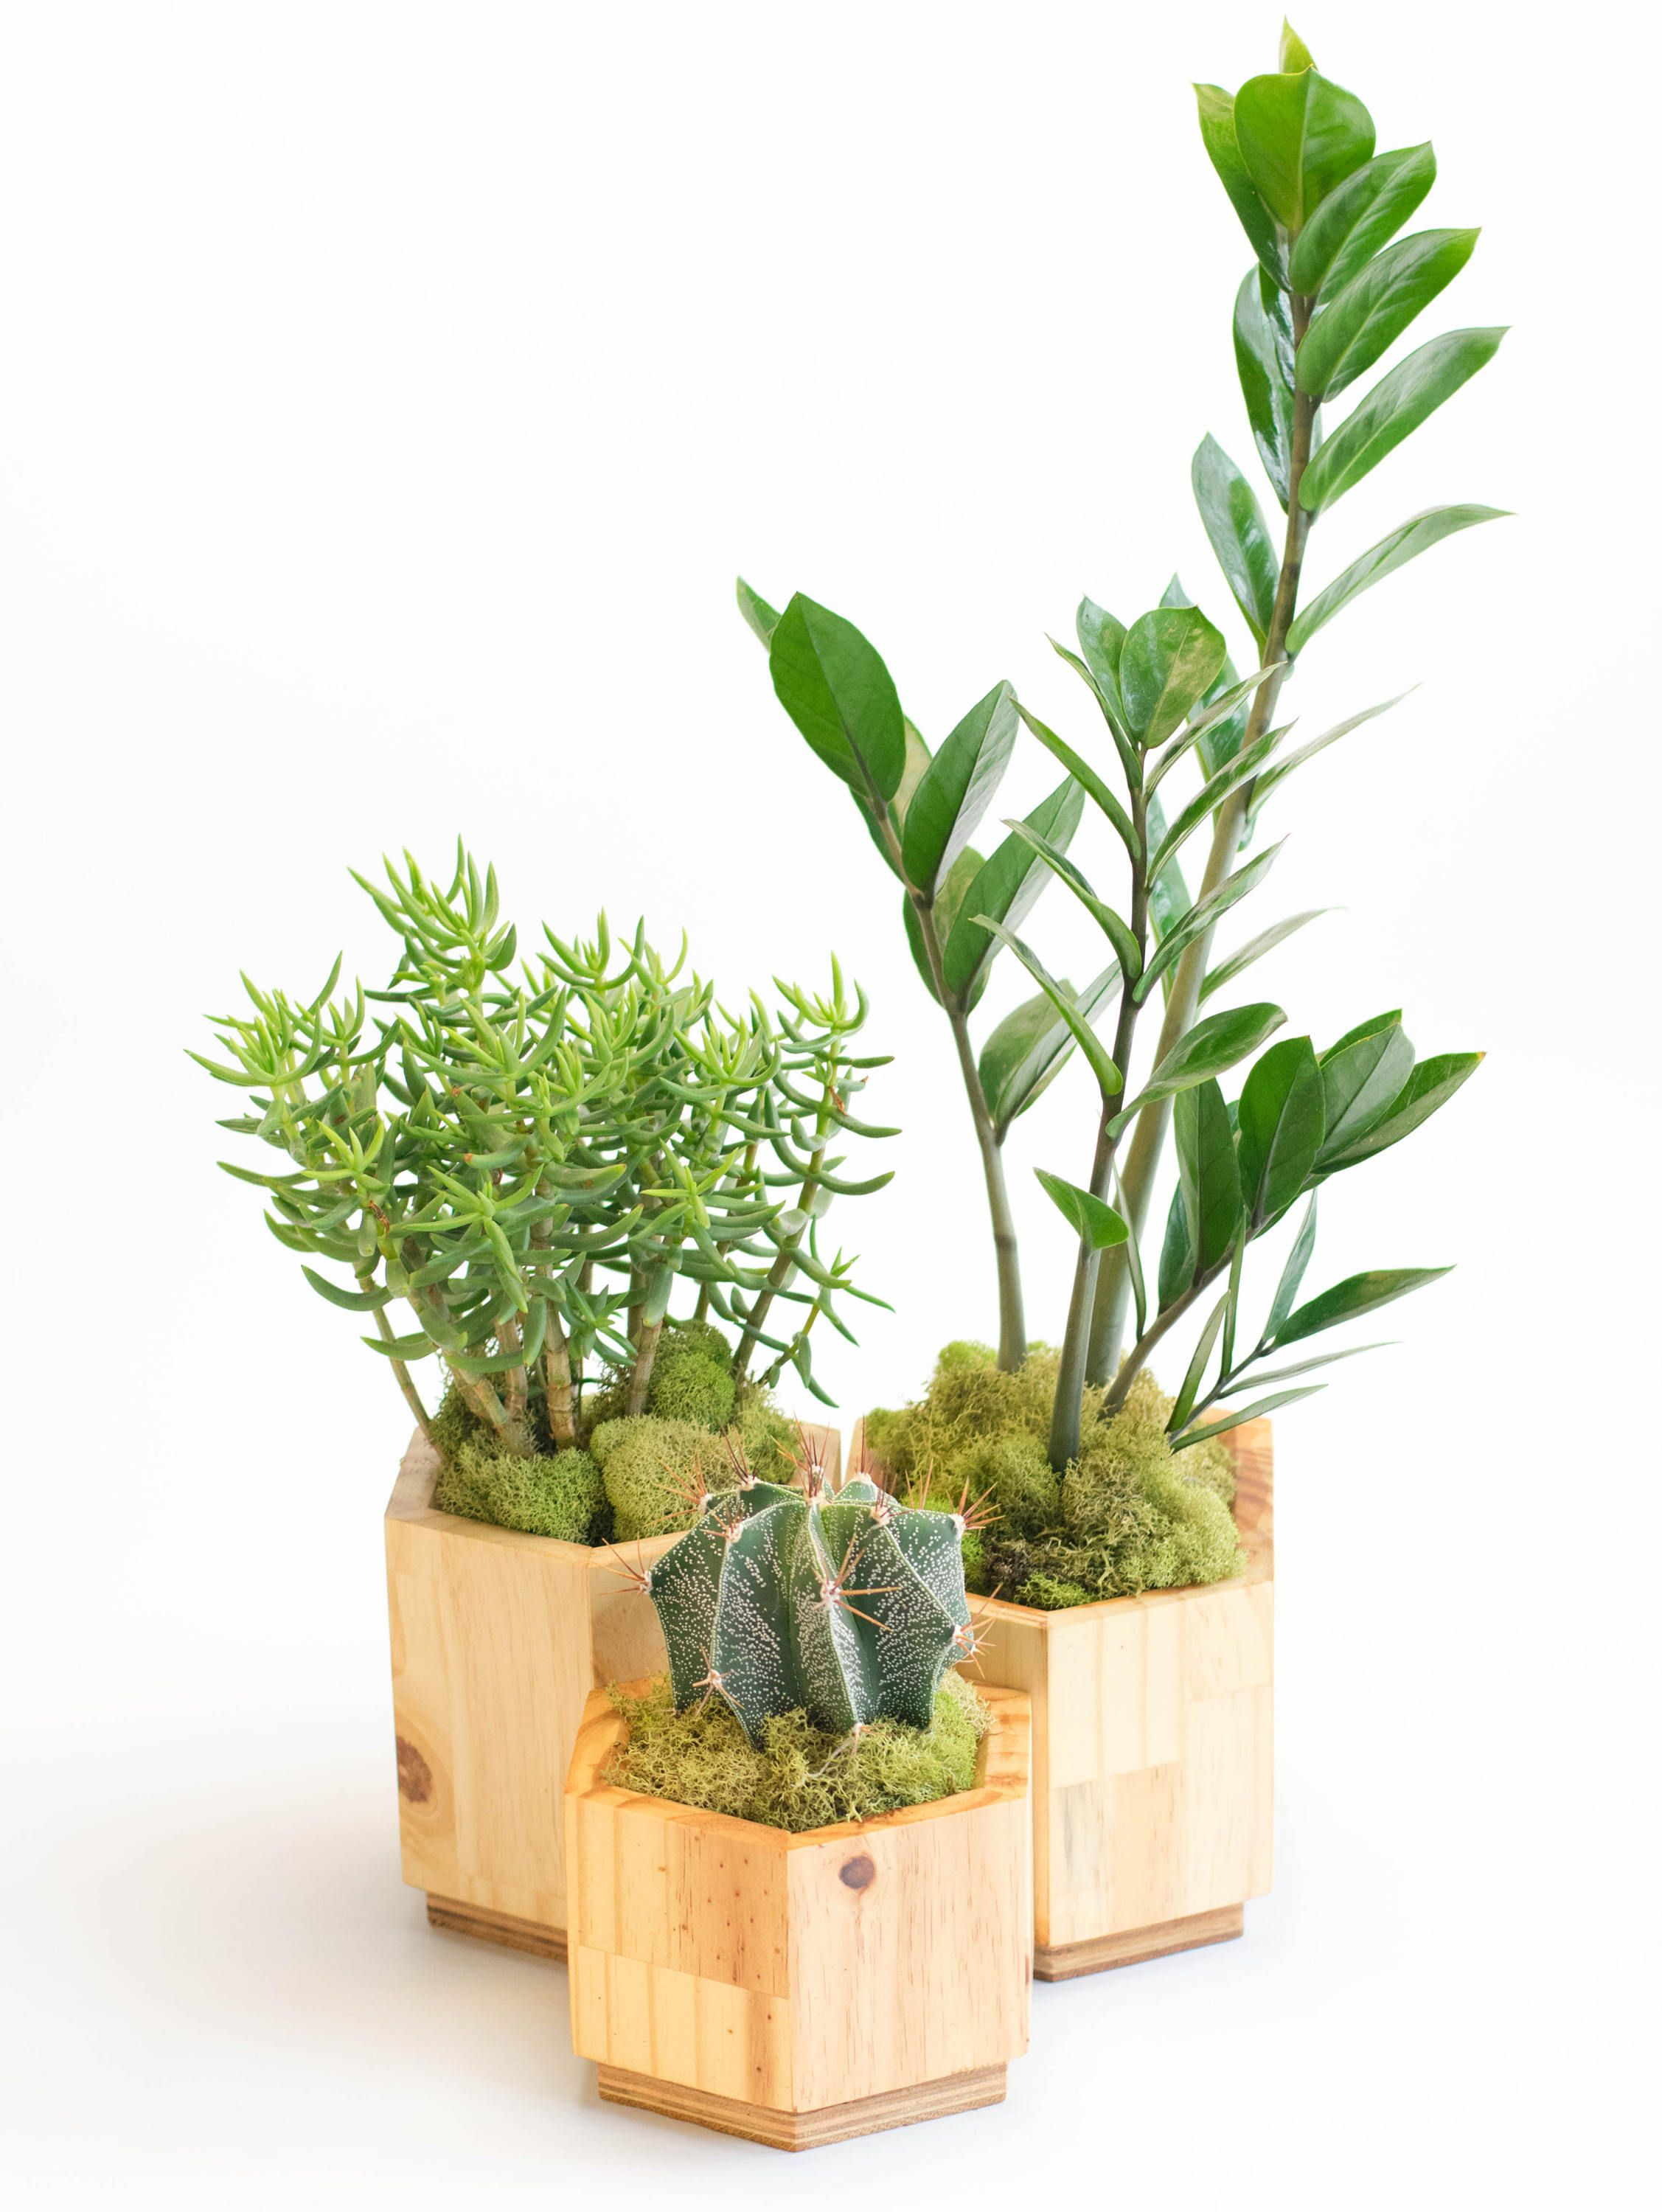 Hexagon Planter Set Geometric Planter Wood Planters Wooden Planter, Succulent Planter,